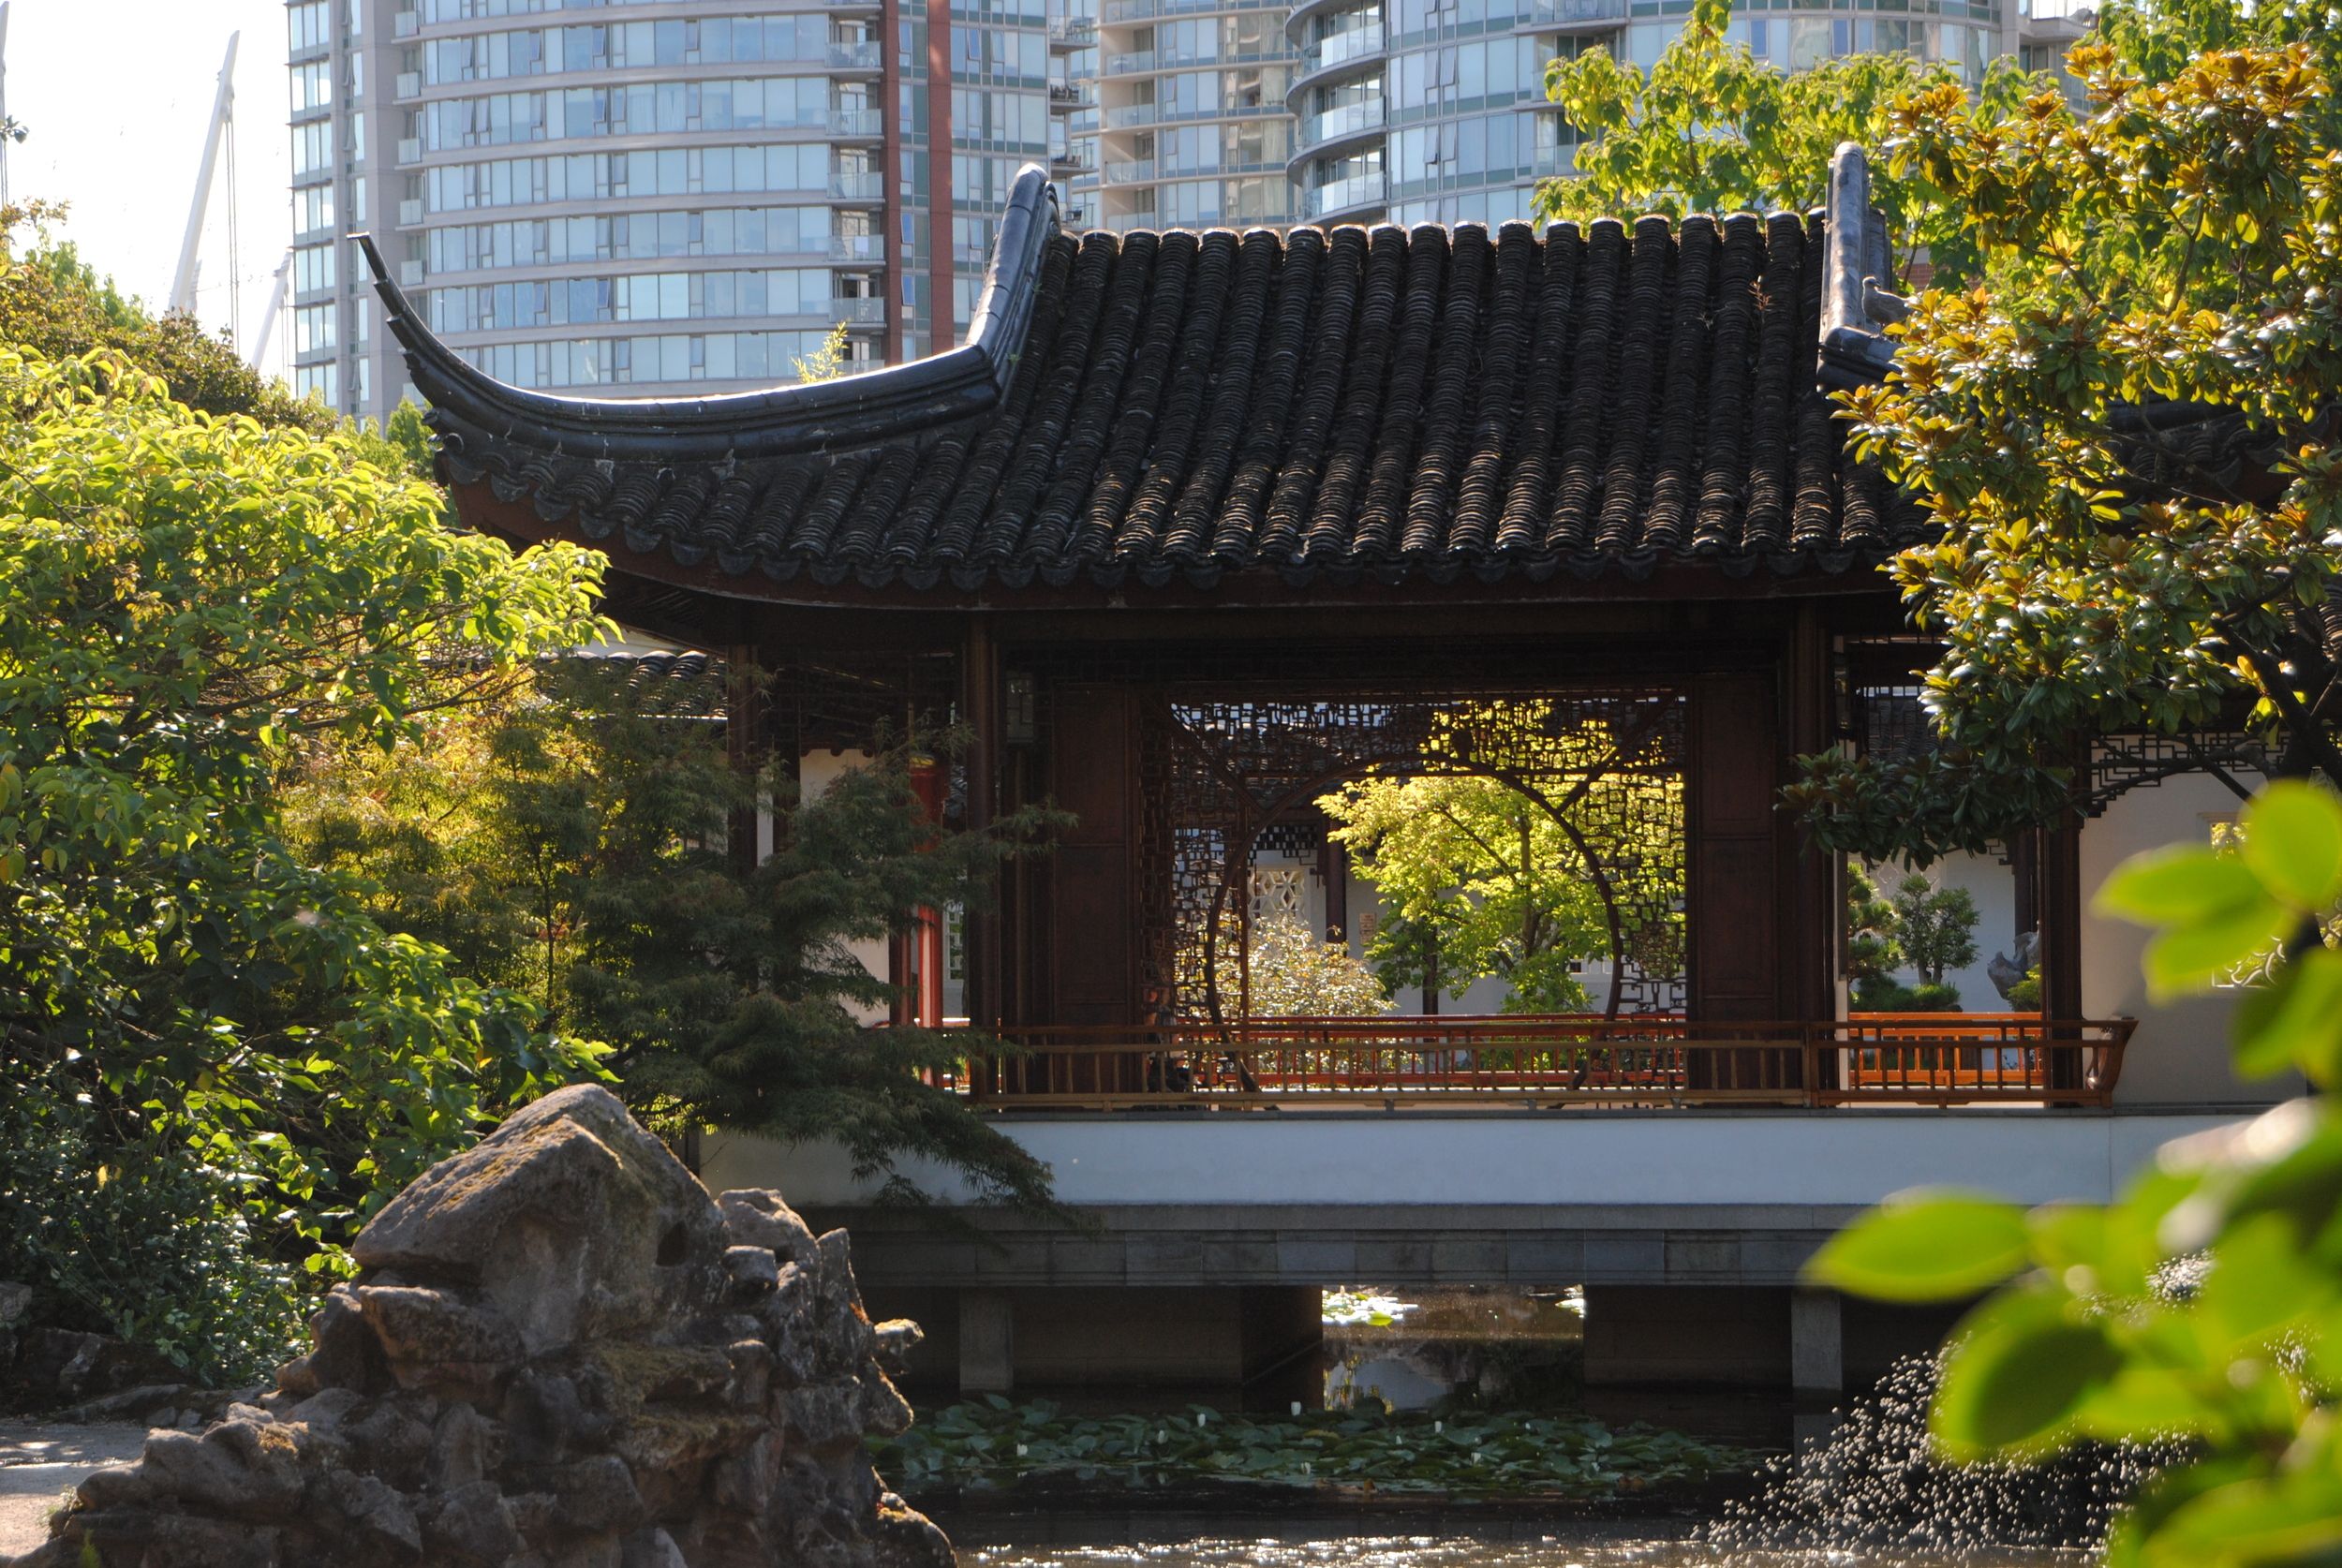 Dr. Sun Yat Sen Classical Chinese Garden is surrounded by the city.